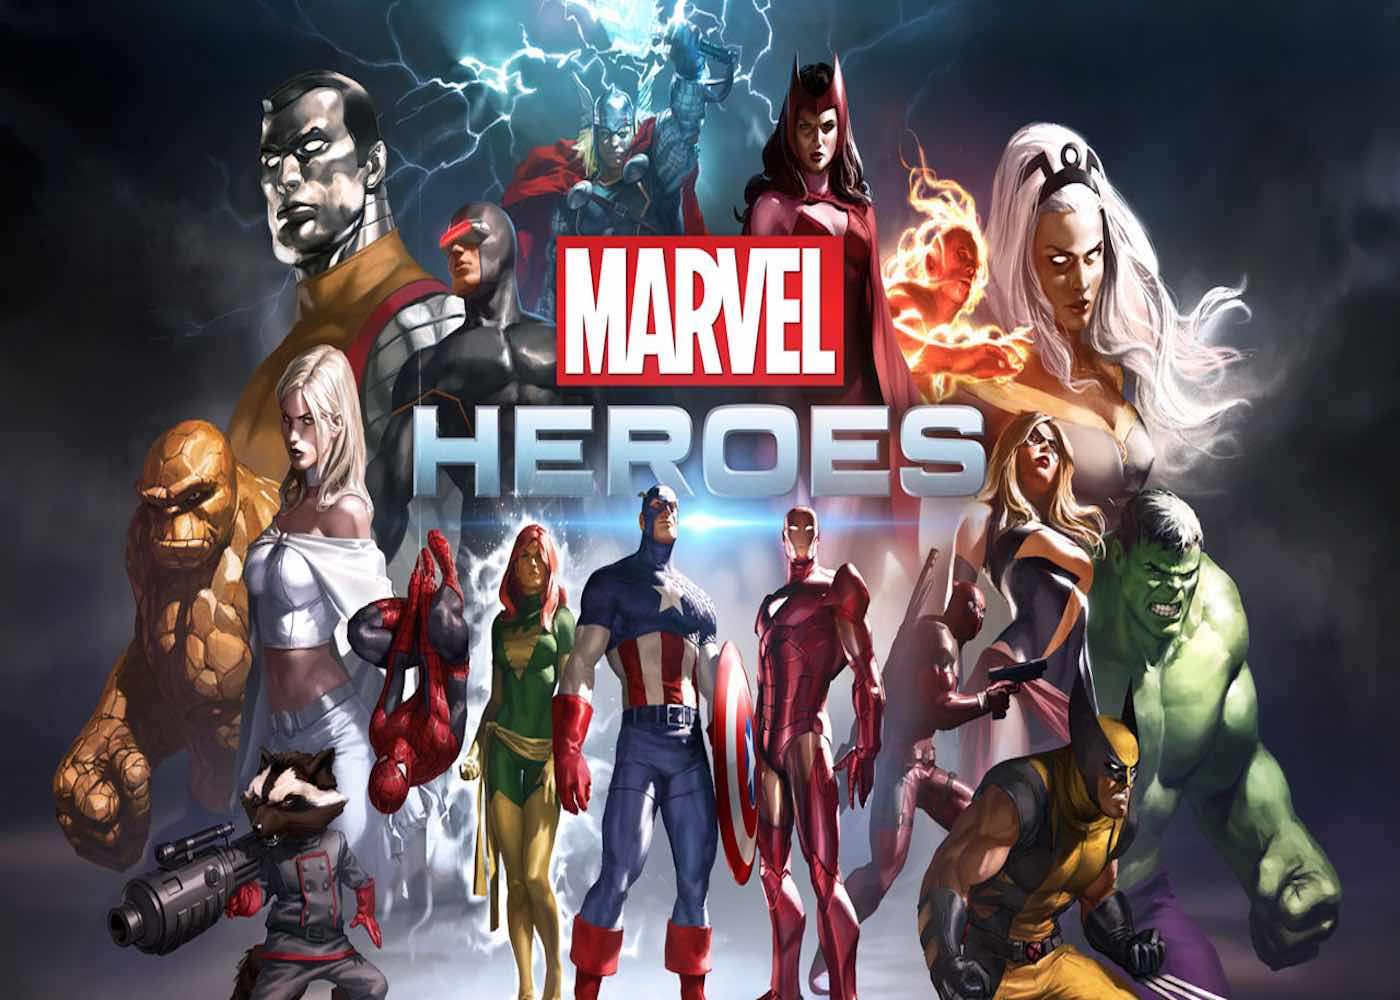 Marvel Heroes Omega: How Is It Shaping Up On PS4 and Xbox One?